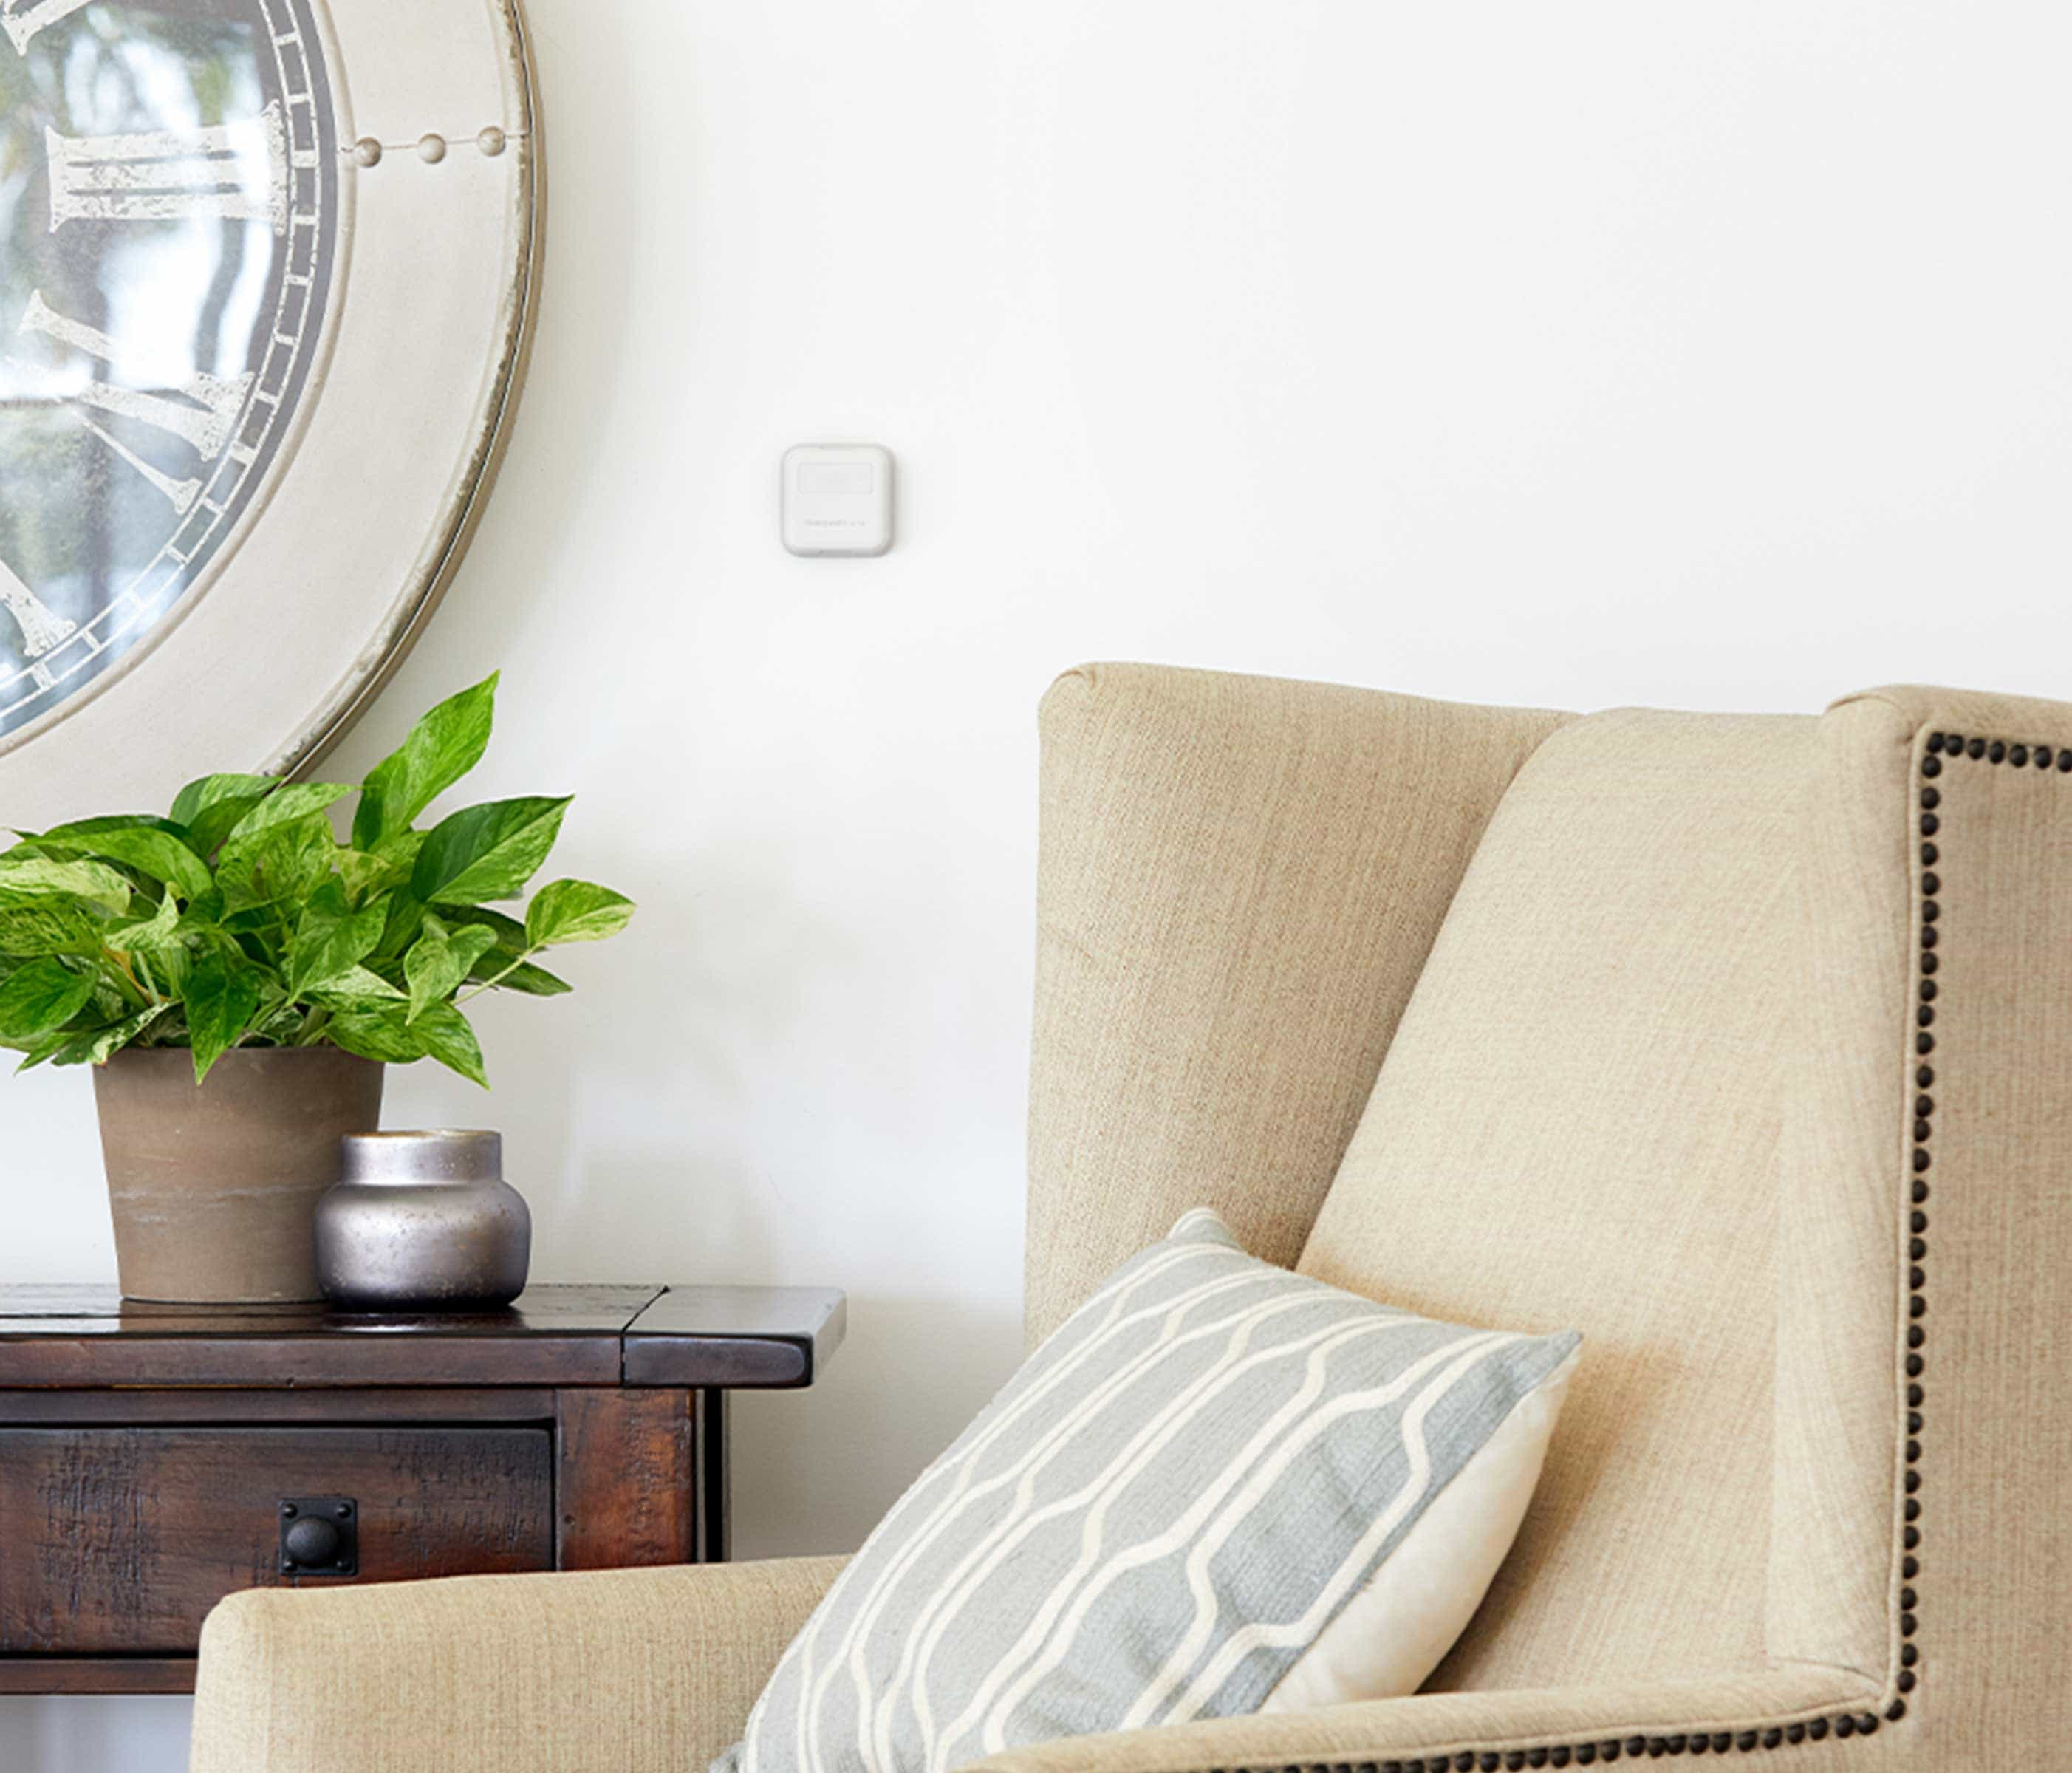 Control comfort levels in every room with room sensors